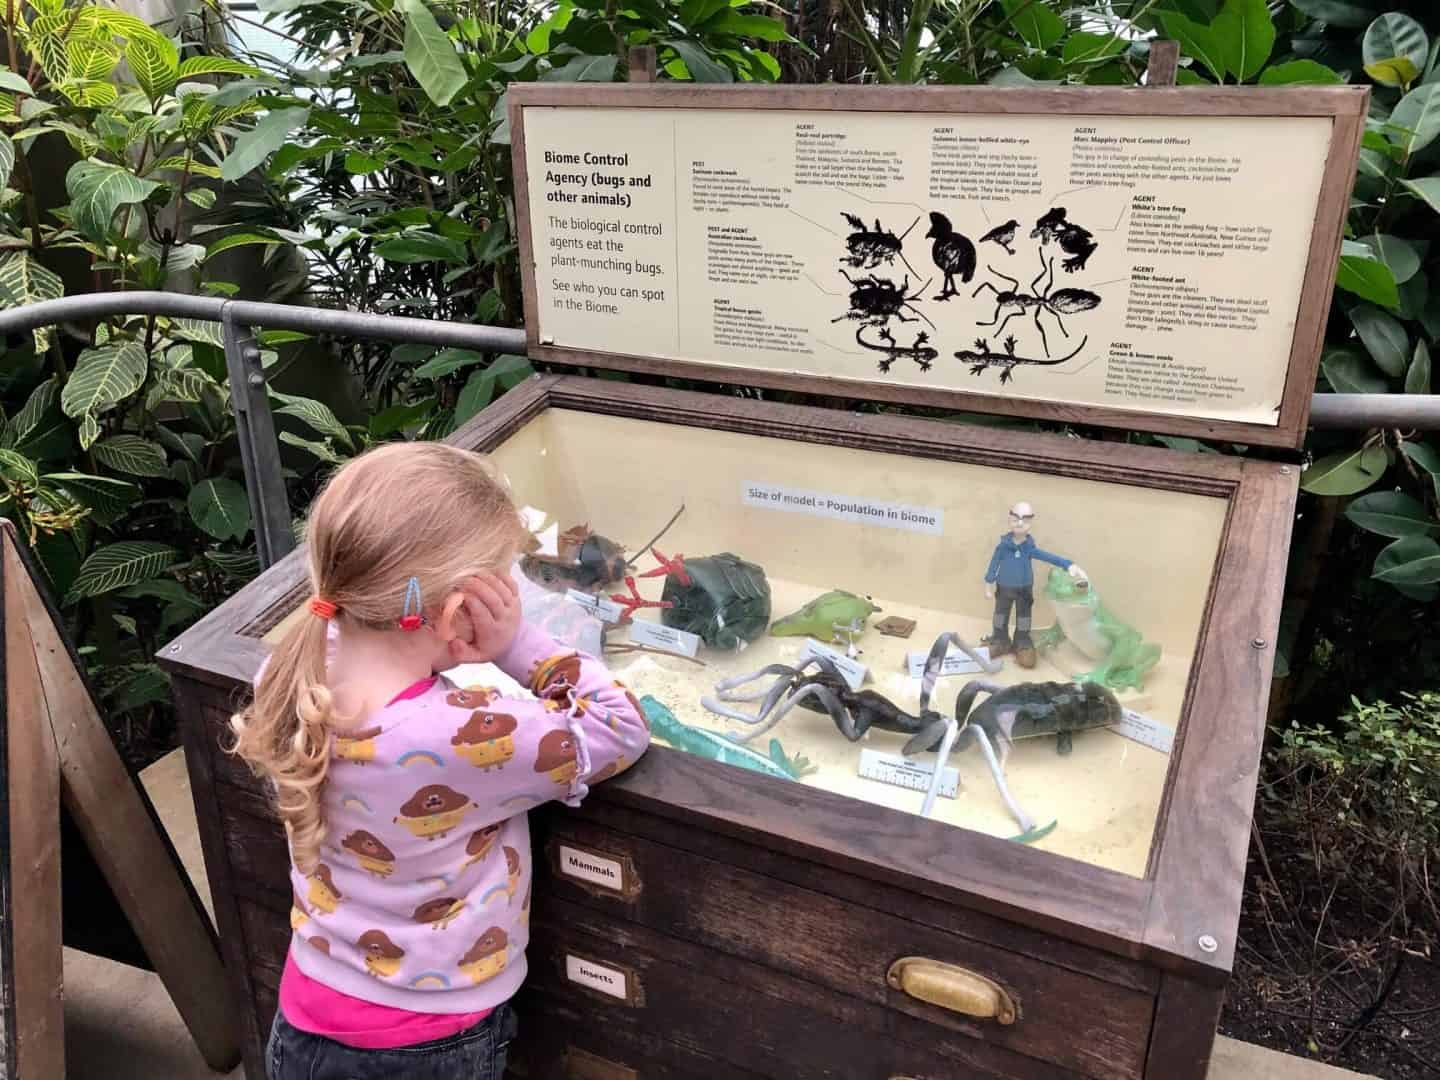 Rainforest Biome Control Agency - bugs and animals inside the biome